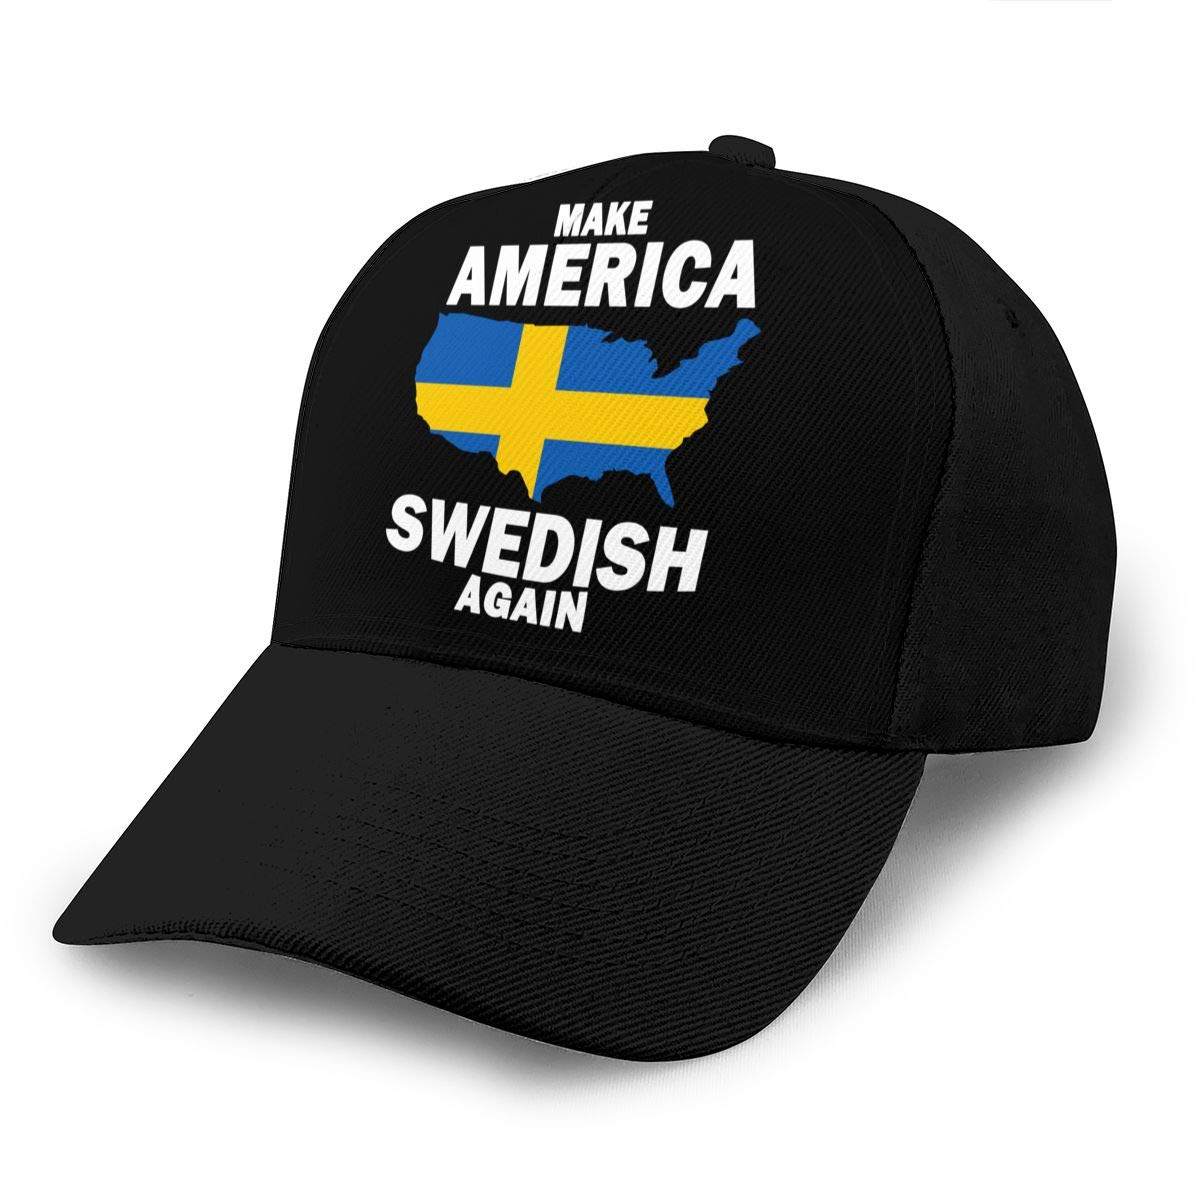 Y94OIW@MAO Make America Swedish Again Trucker Hat for Mens and Womens Cotton Sports Cap